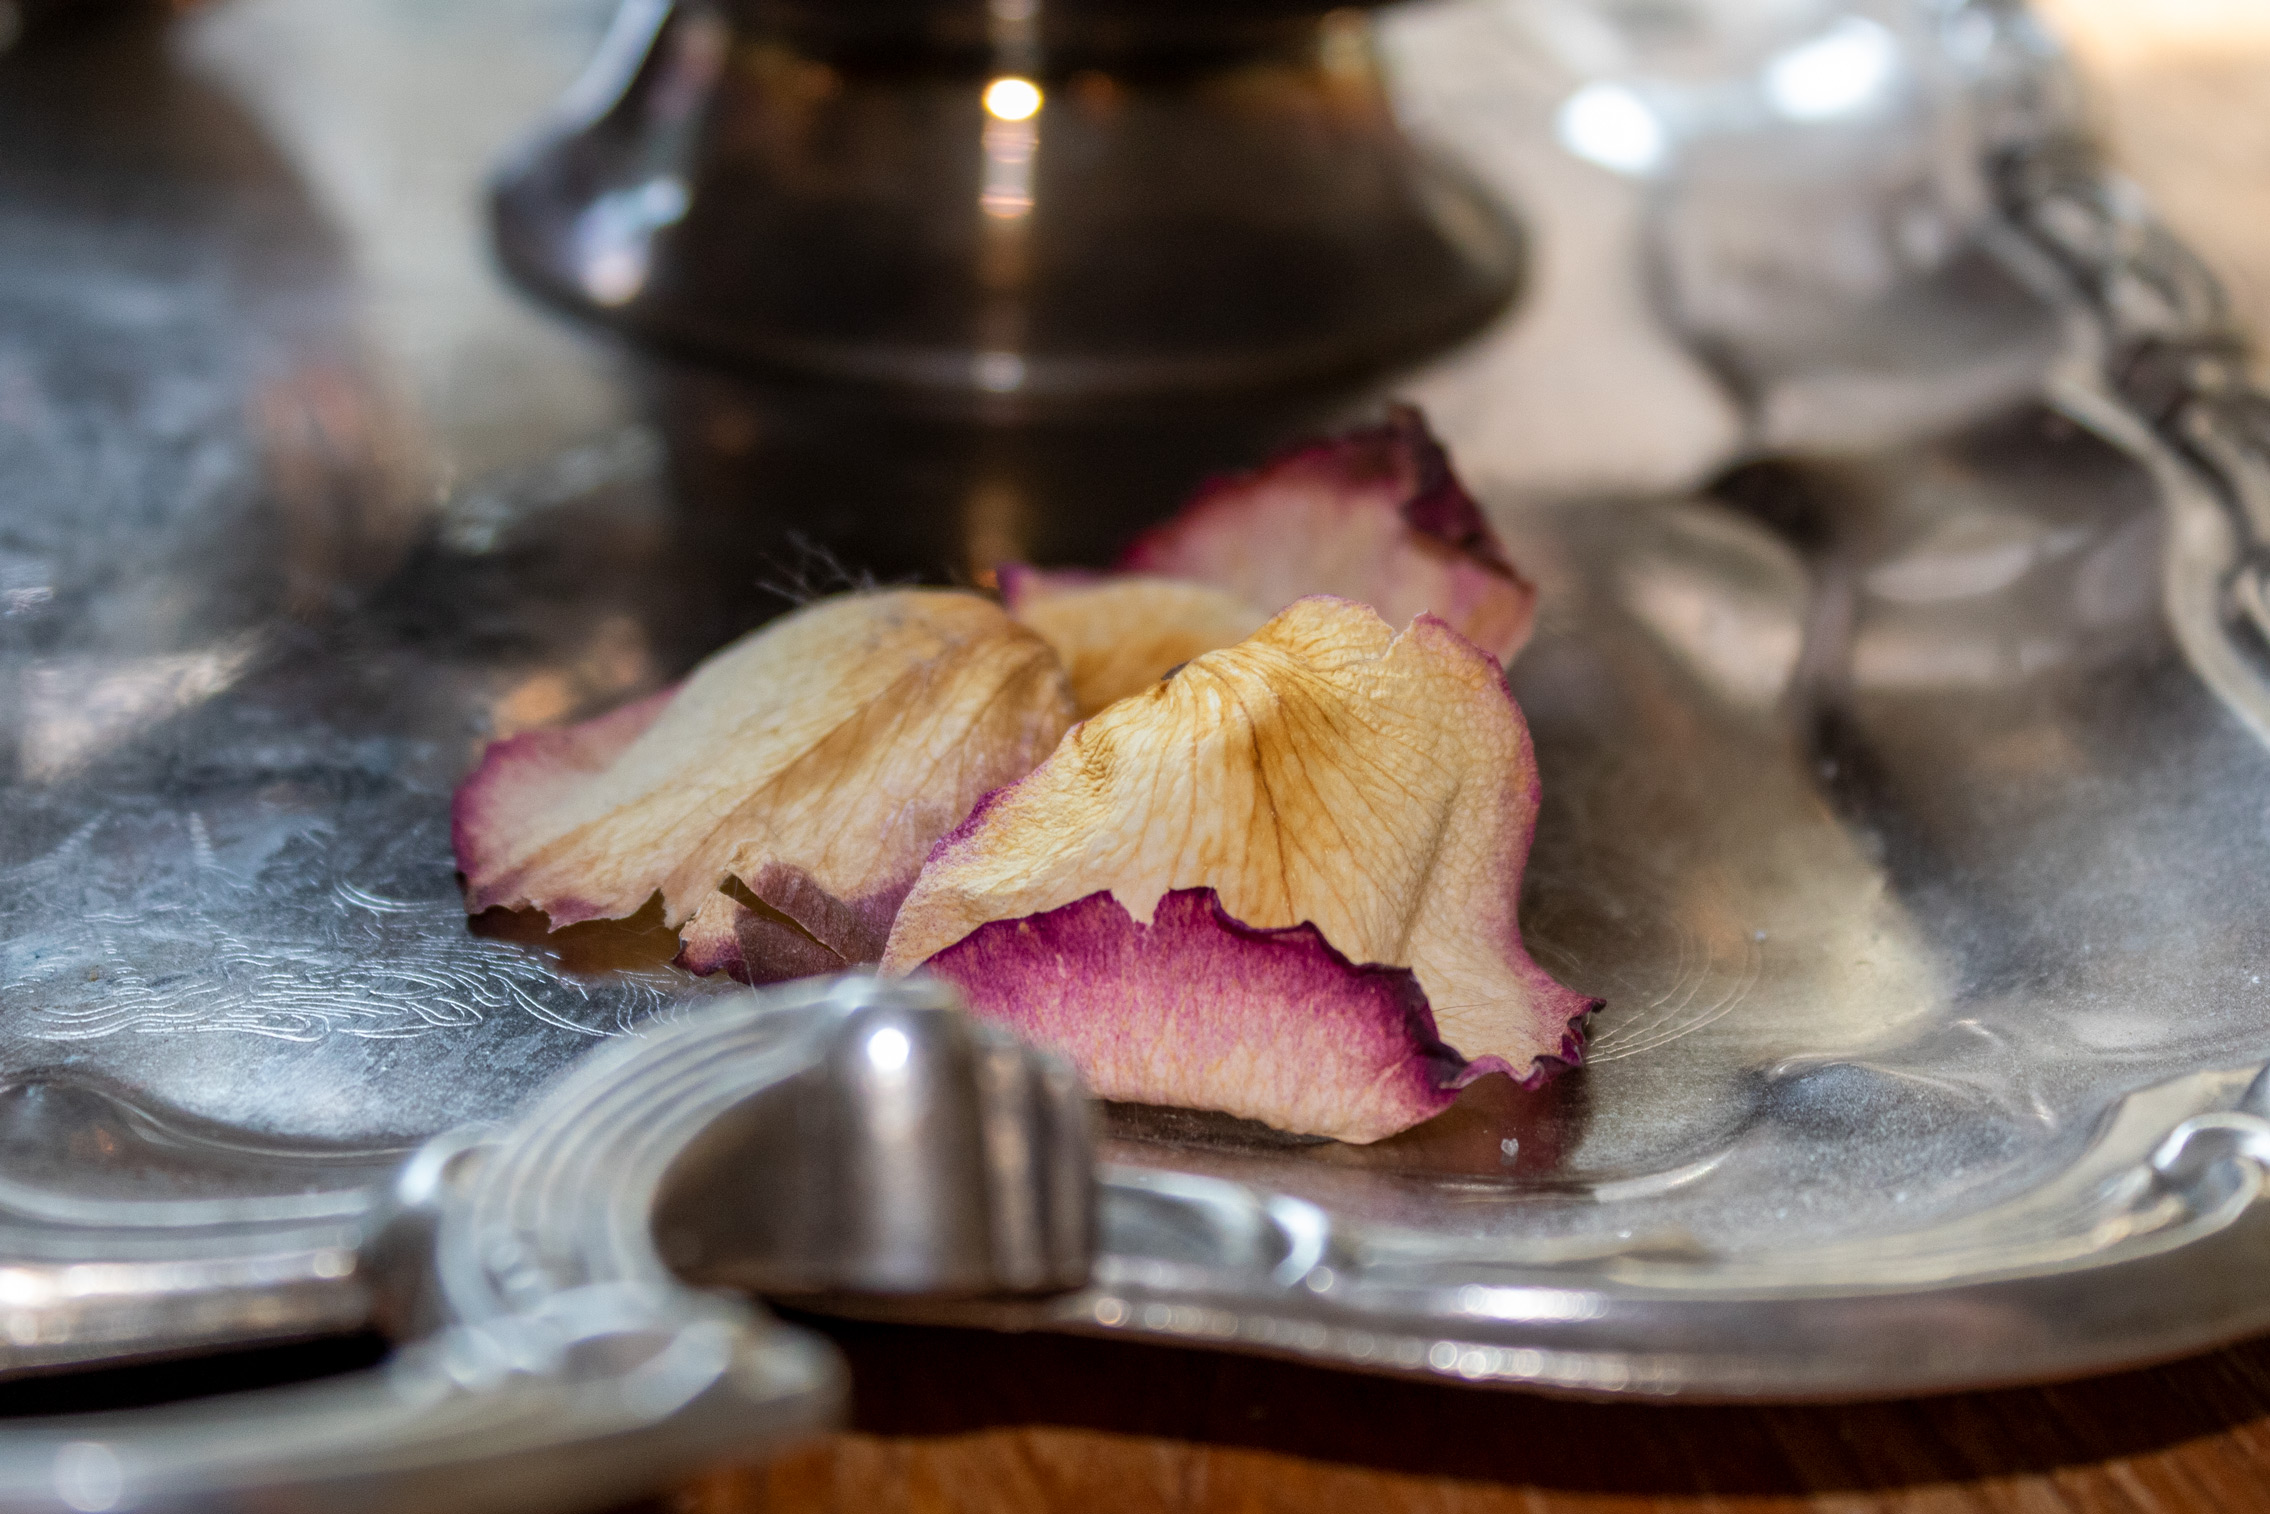 Faded rose petals sitting on a silver tea tray